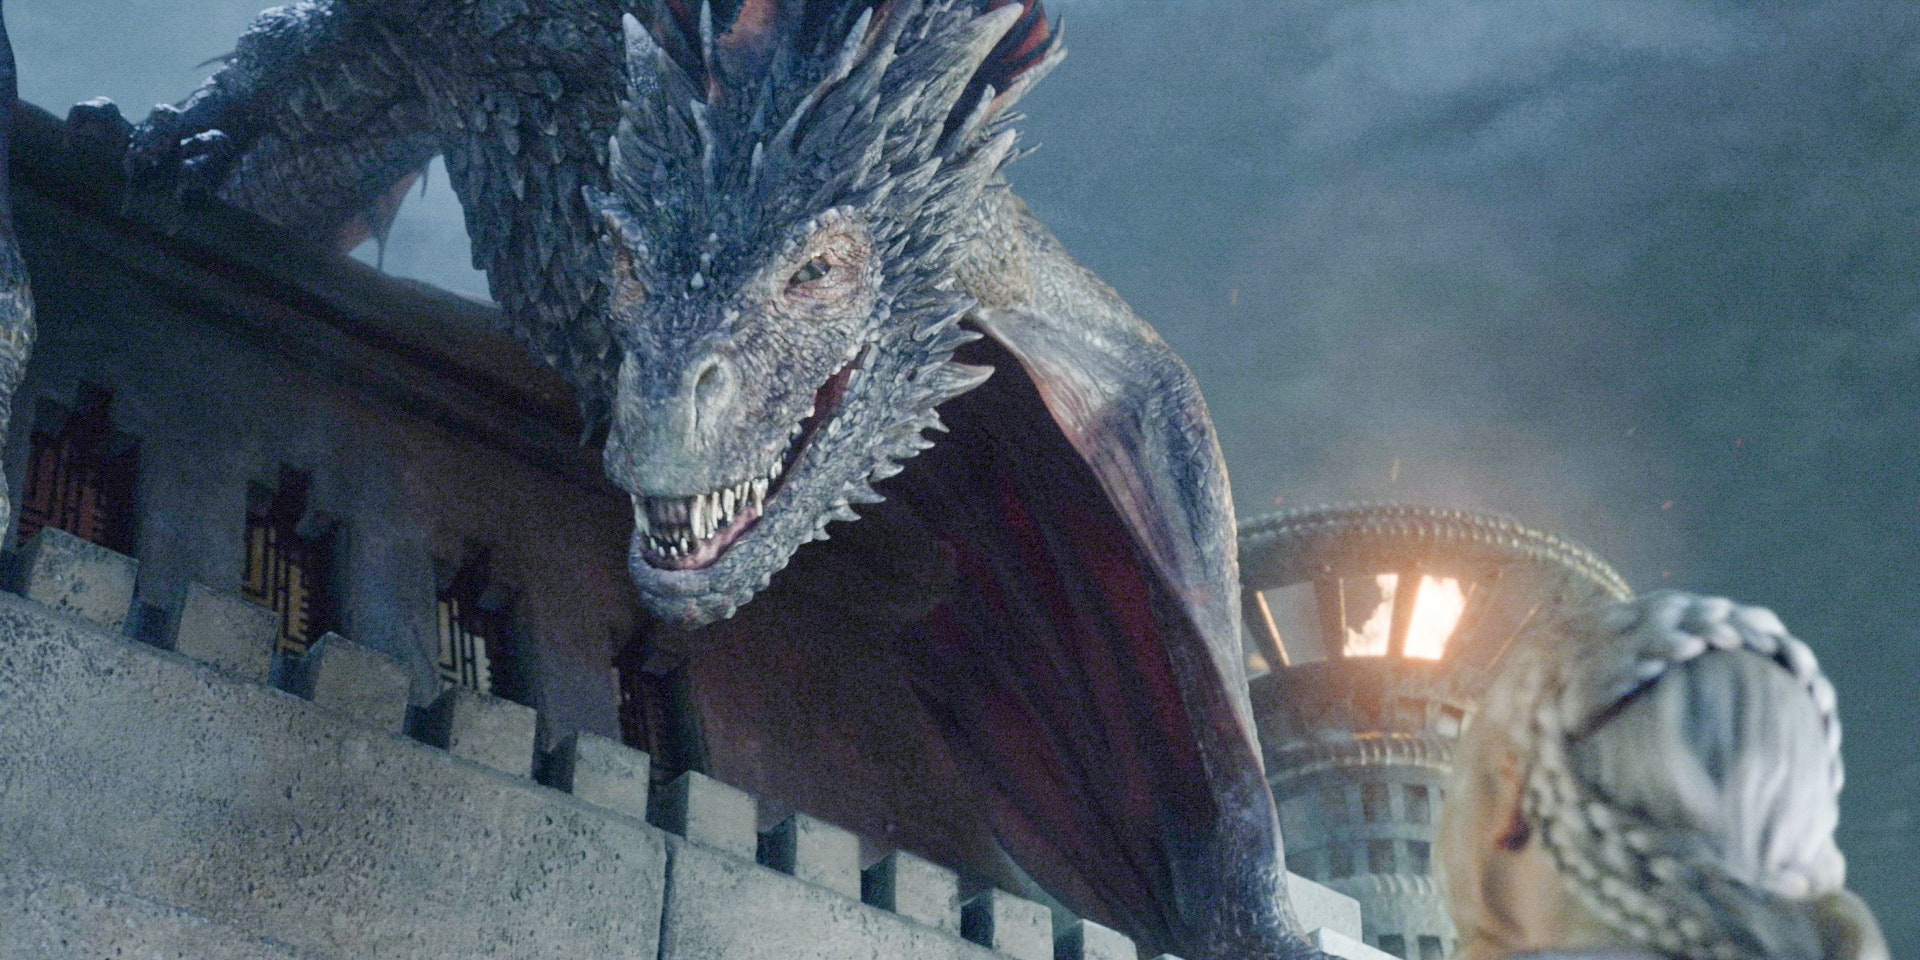 'Game of Thrones' Finale Could Inspire a Drogon Spinoff Sequel in Valyria